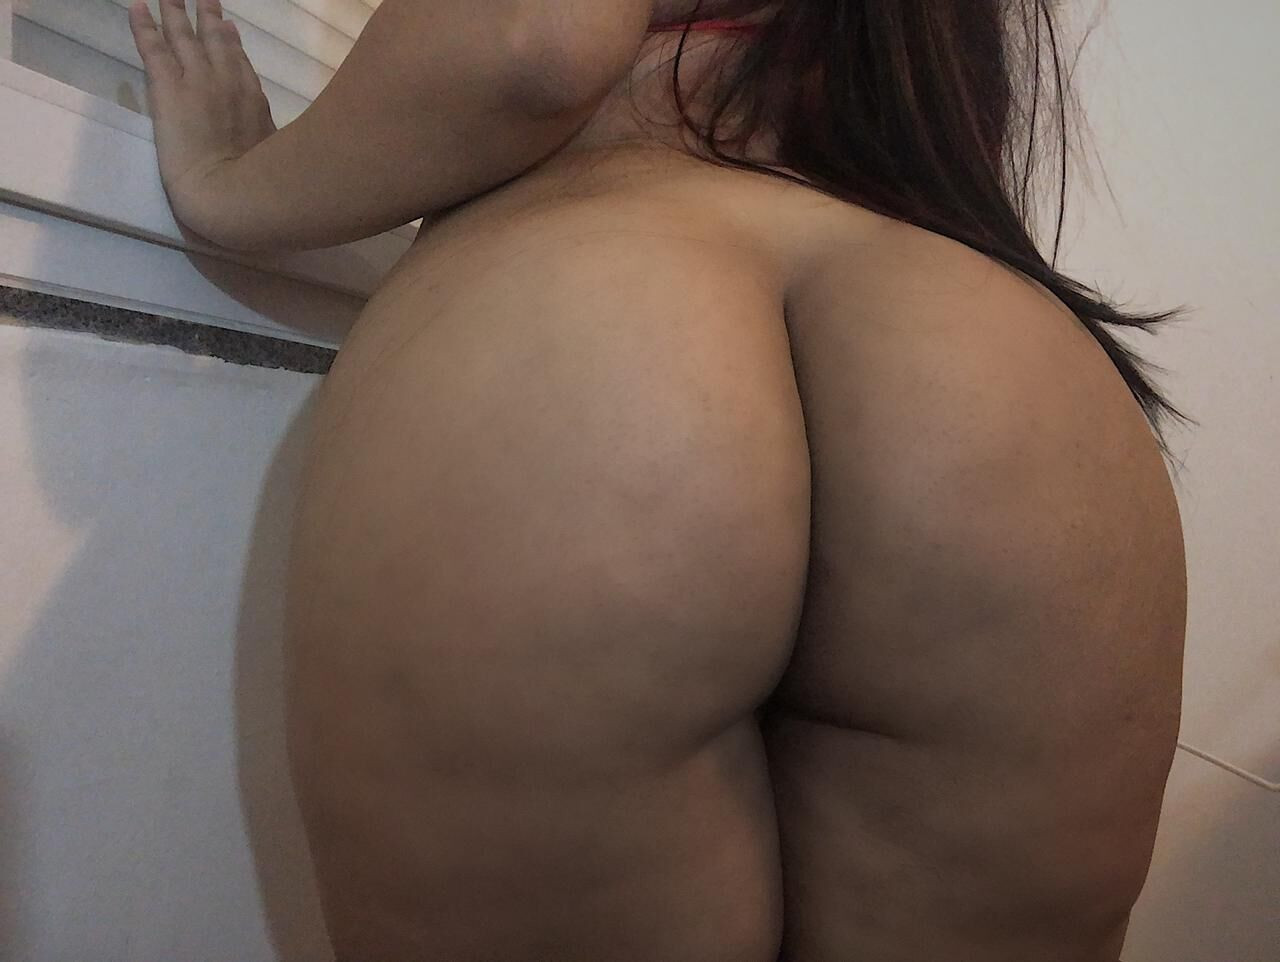 Victoria Matosa onlyfans nudes leaks thefappening.nu 7